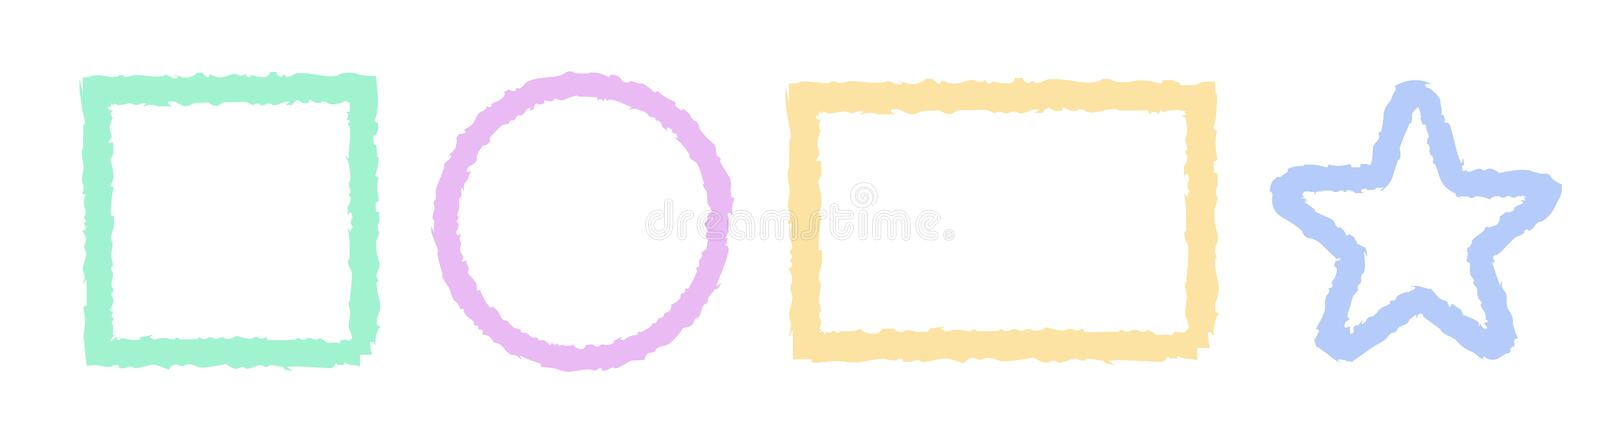 Outline Brush Shapes Logo Template Vector. Isolated stock illustration